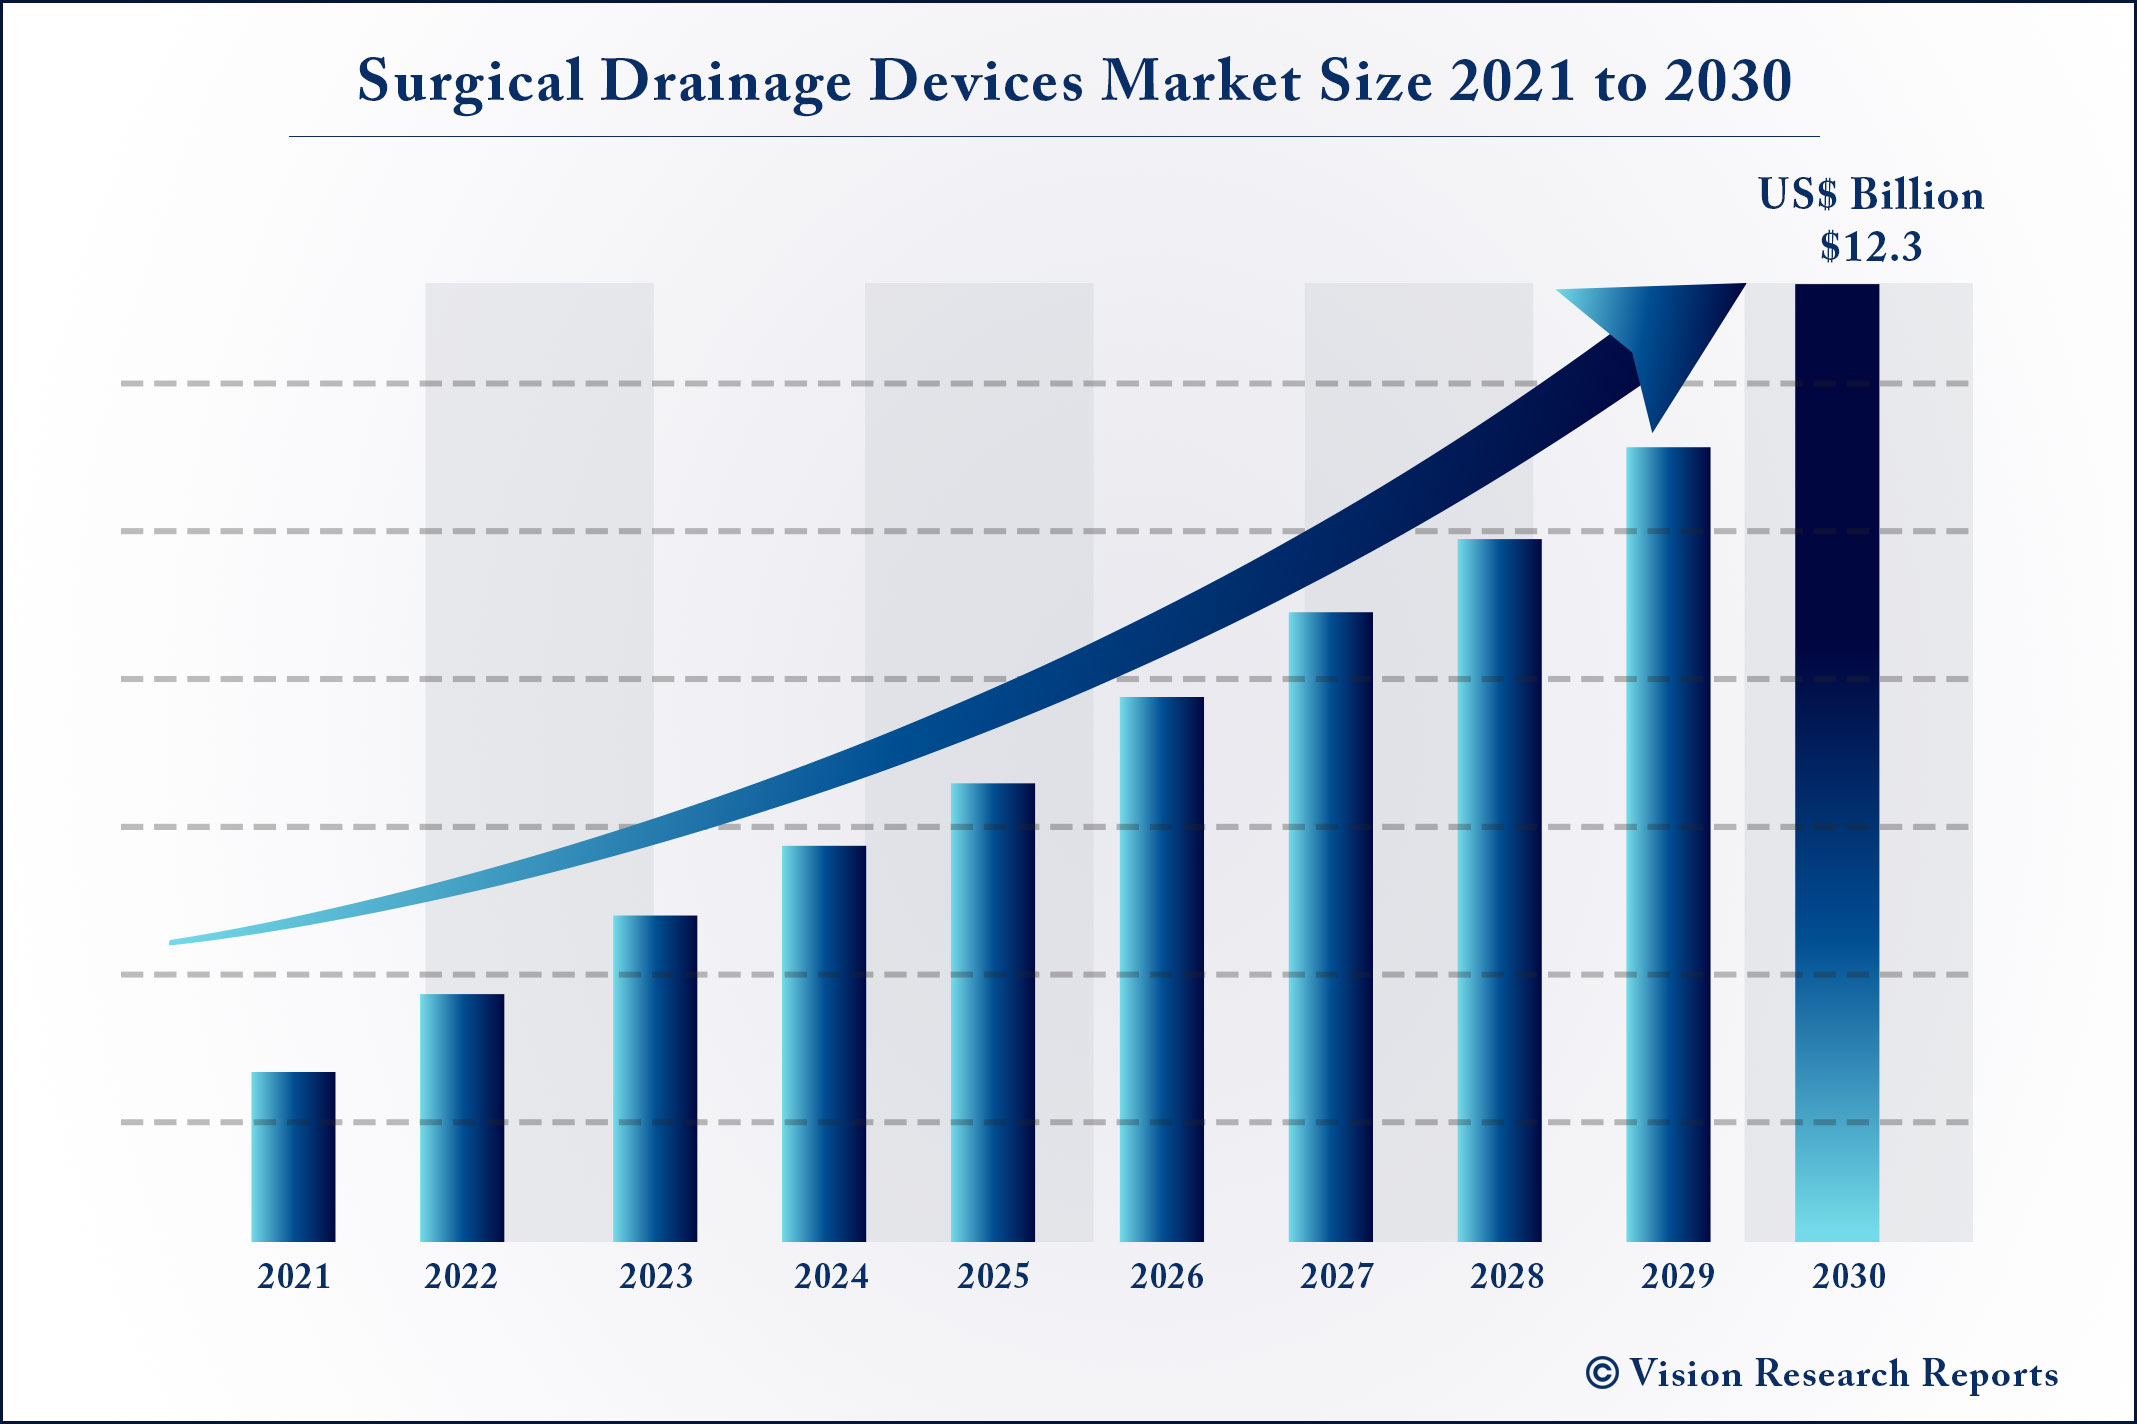 Surgical Drainage Devices Market Size 2021 to 2030